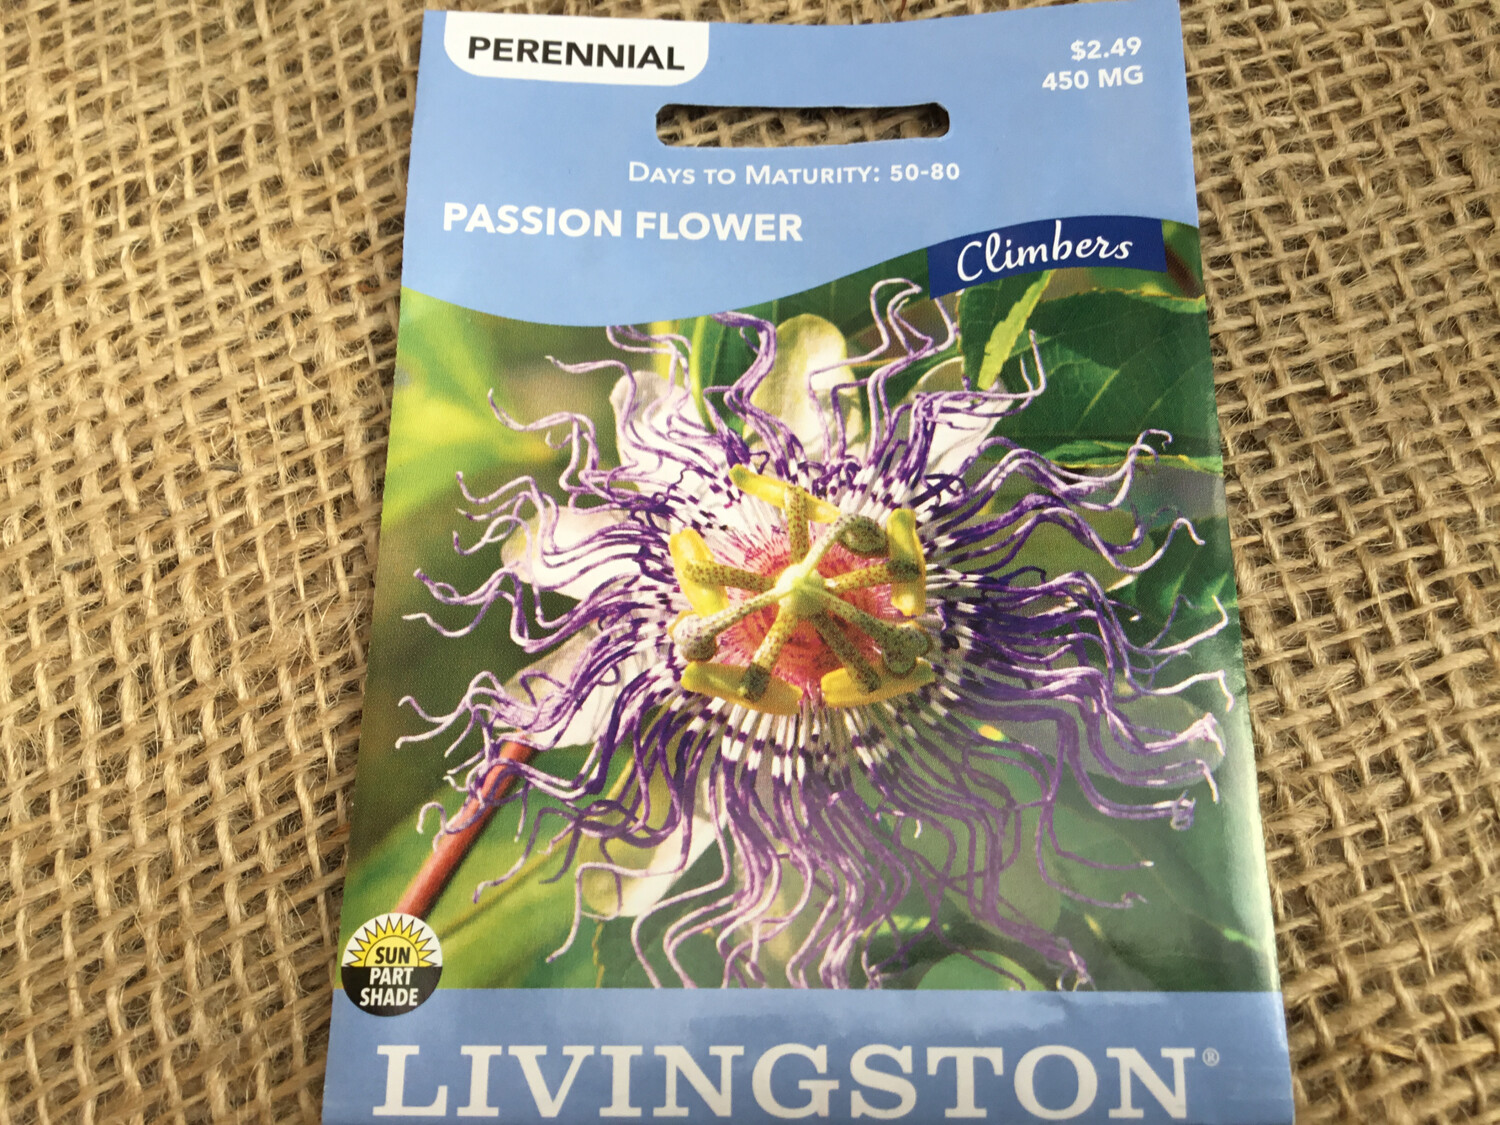 Passion Flower (Seed) $2.49